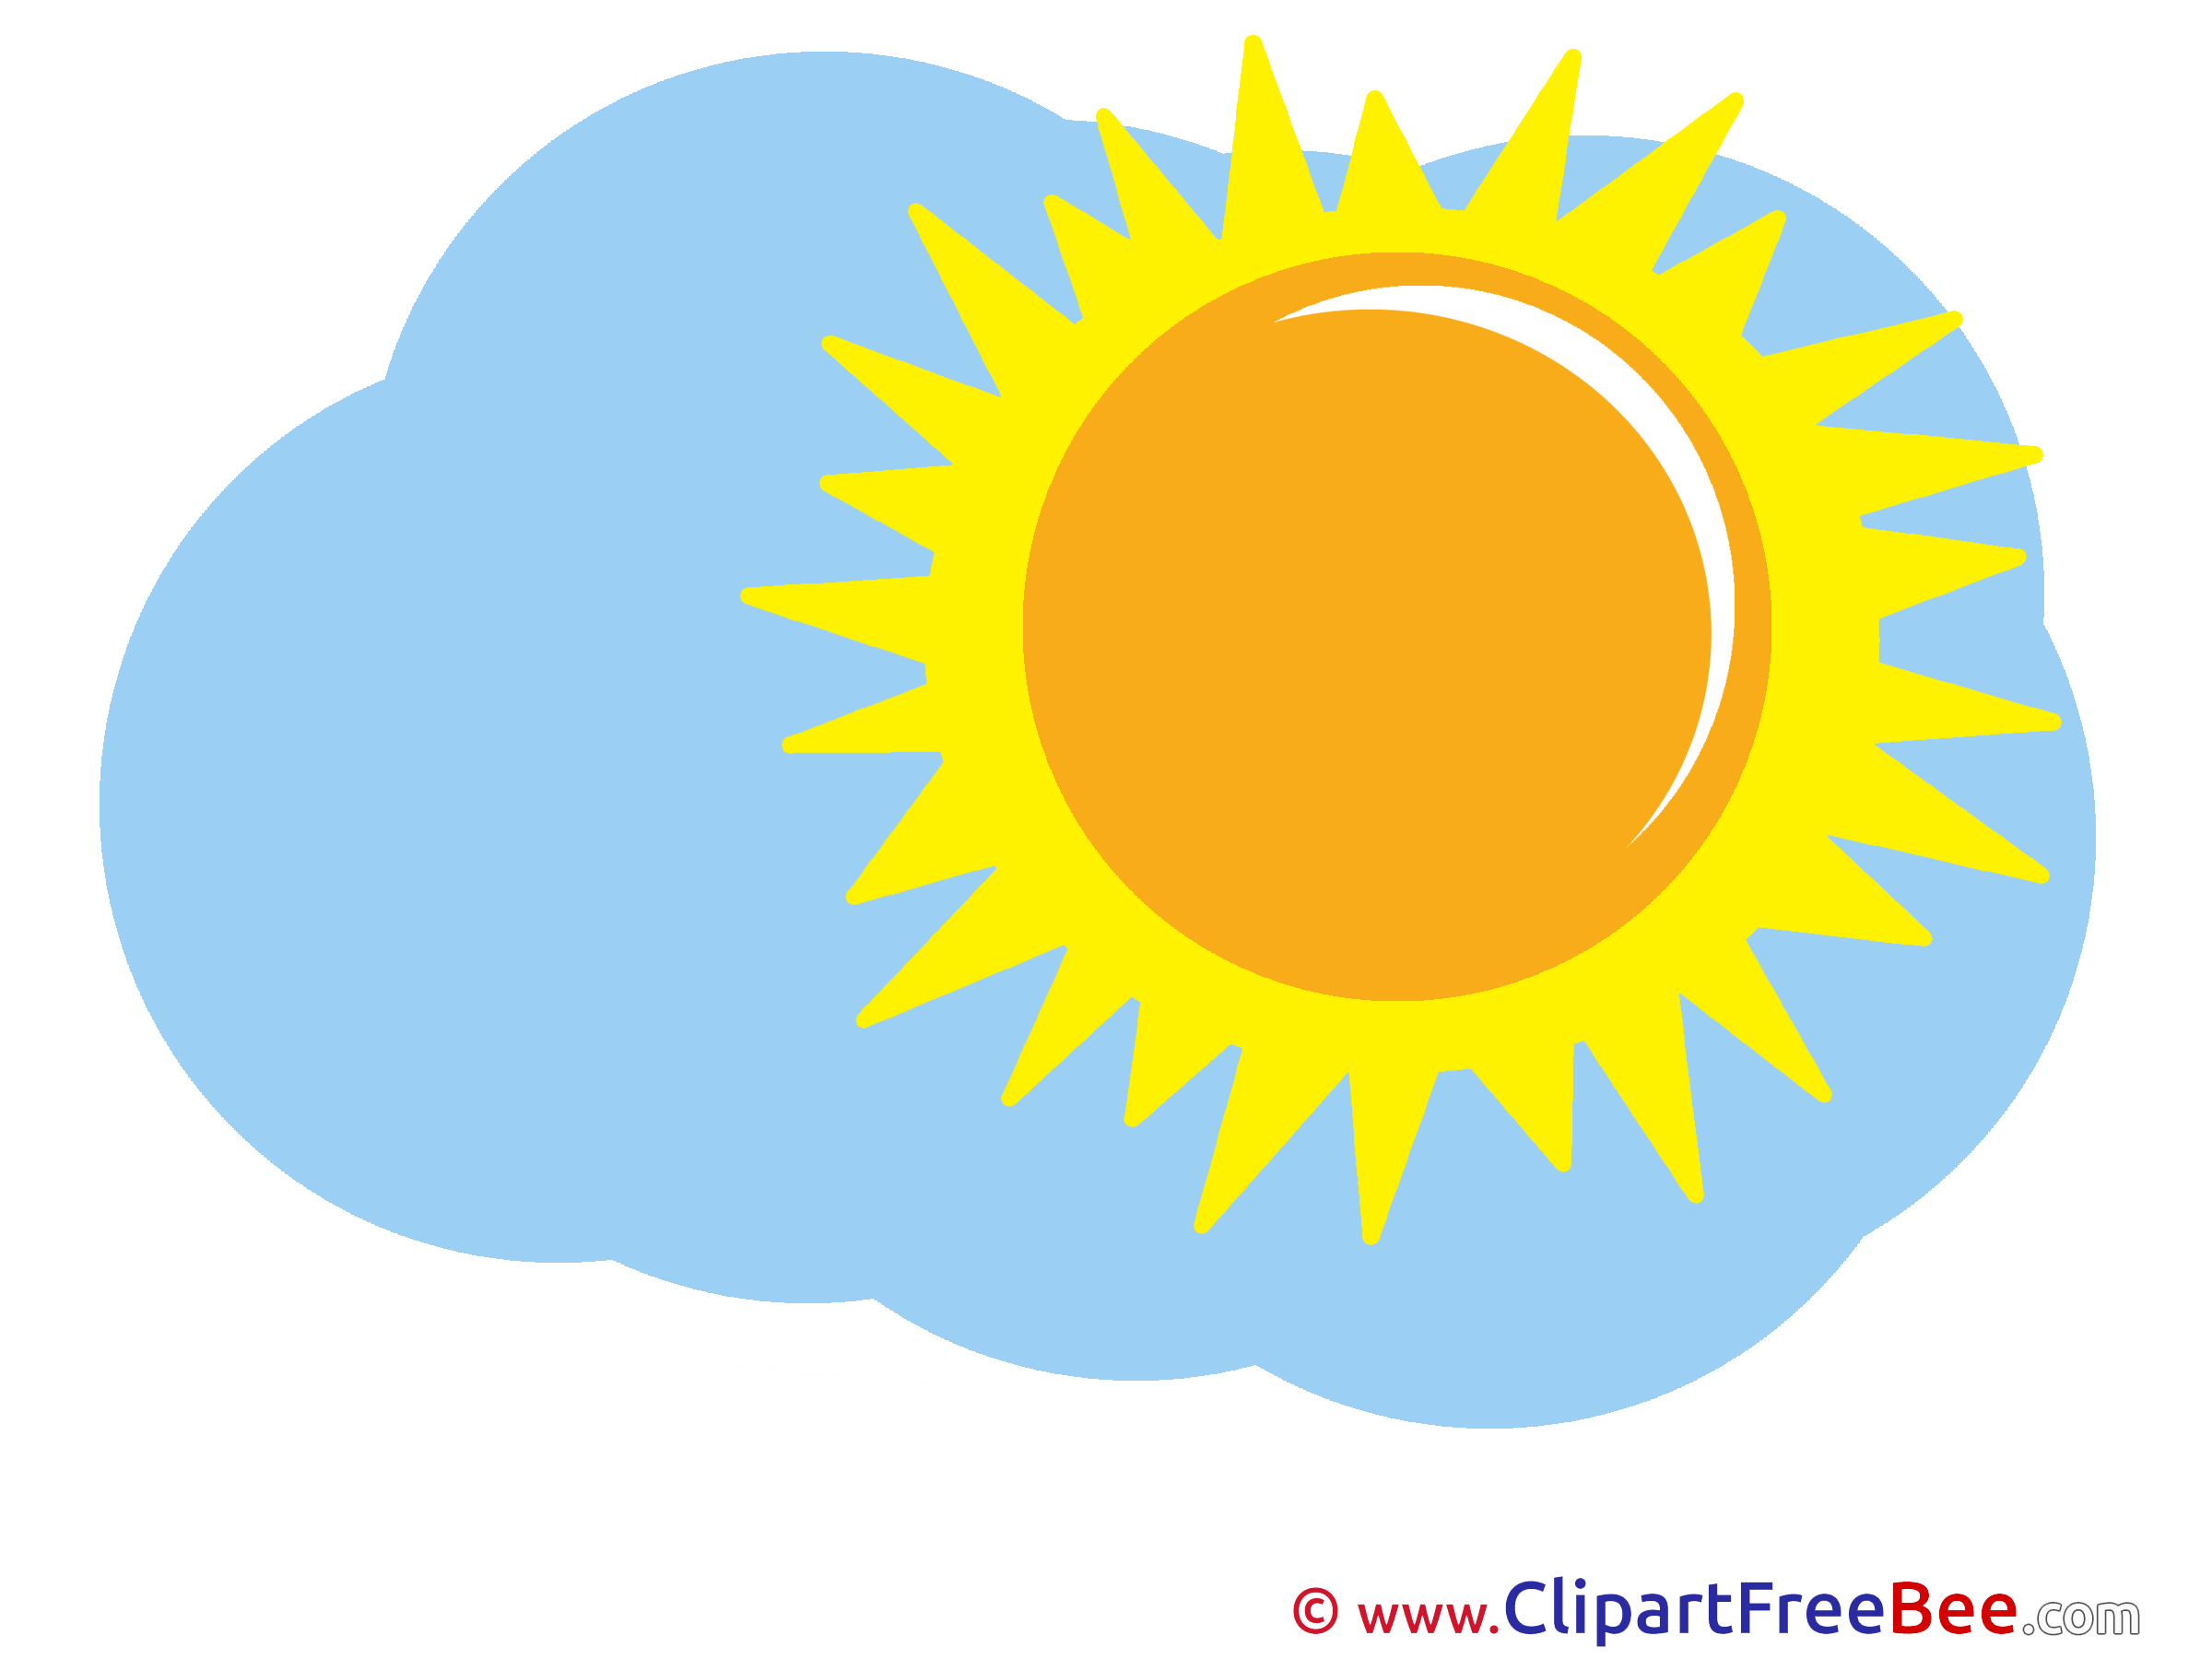 2400x1800 Weather Clip Art Images In High Resolution For Free